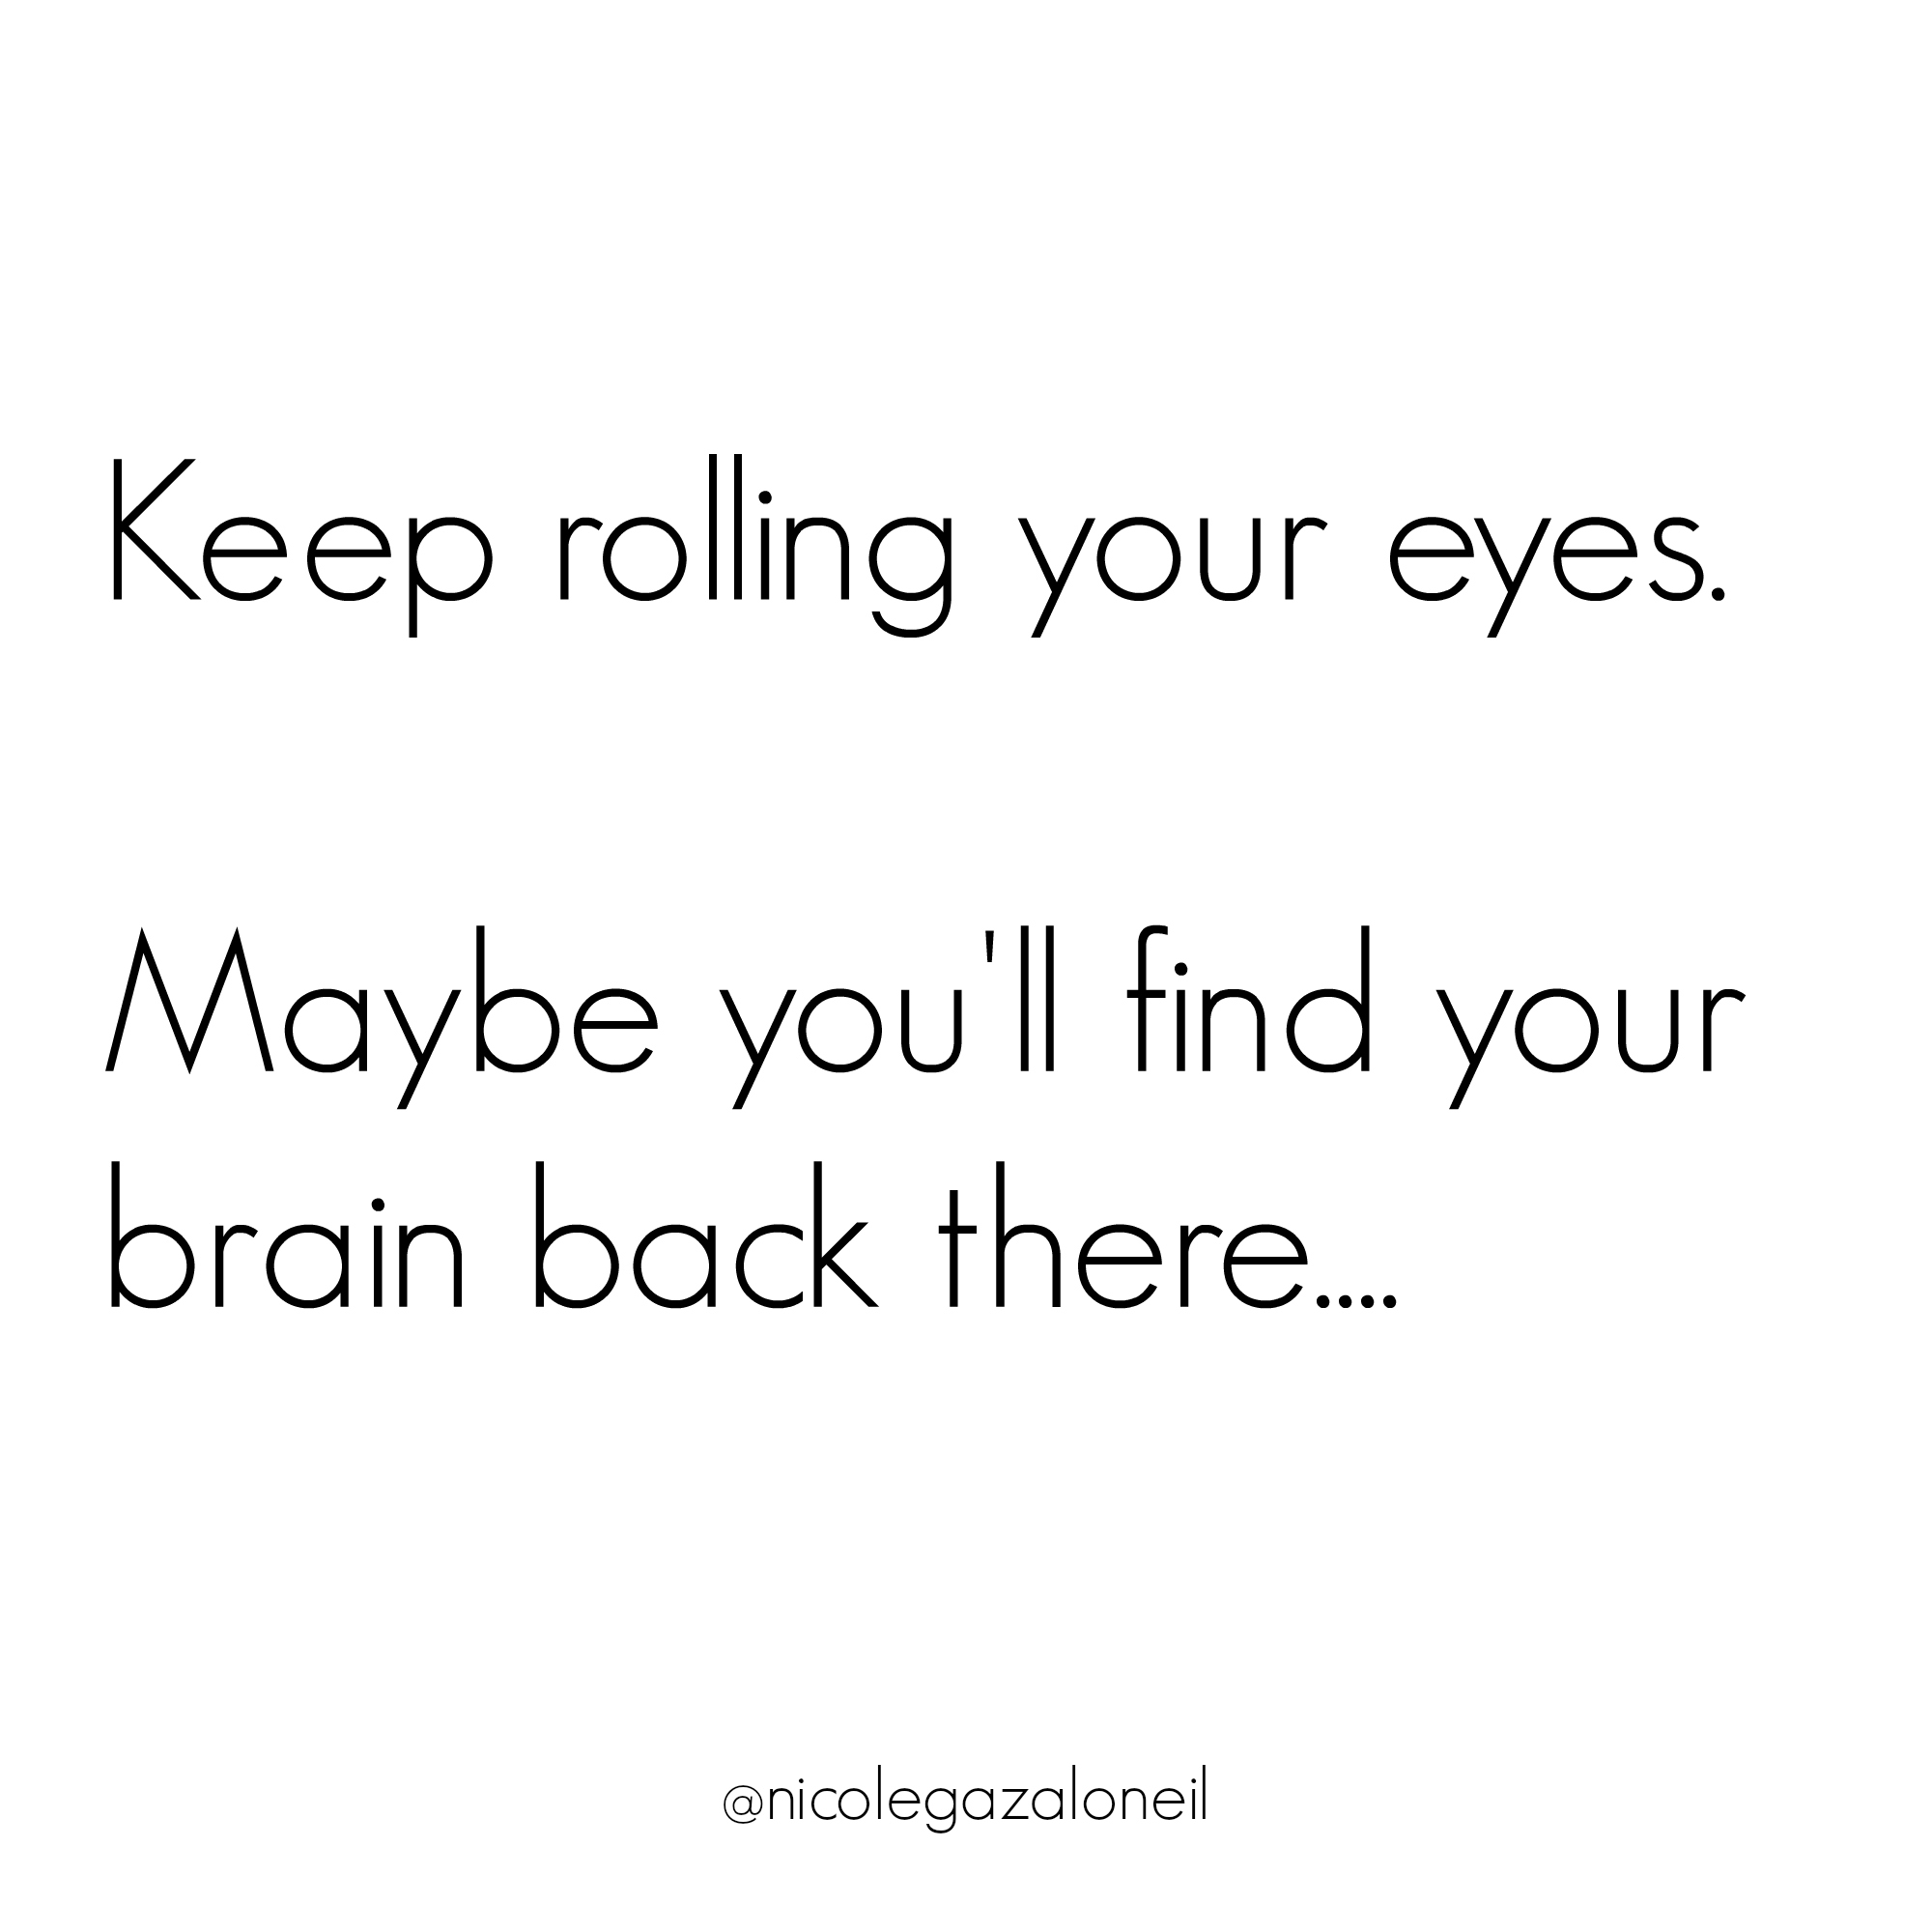 Keep rolling your eyes, maybe you'll find your brain back there.jpg